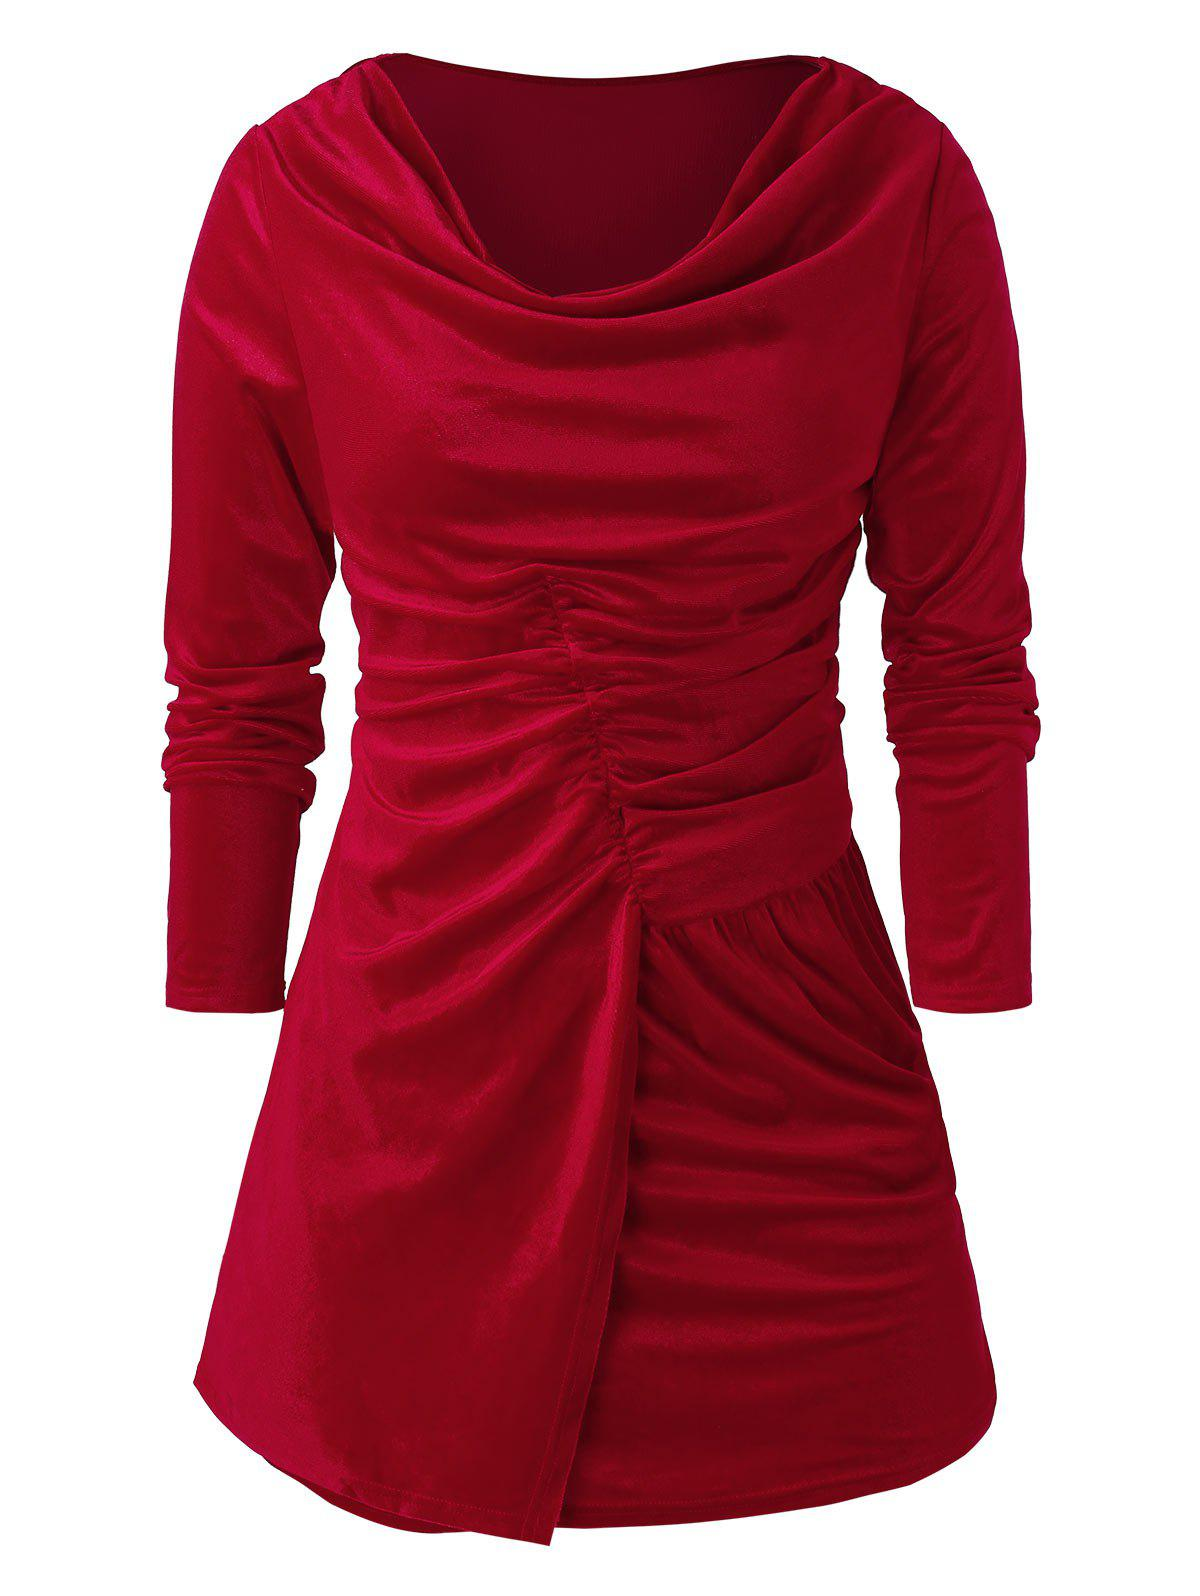 Plus Size Velvet Cowl Collar Solid T Shirt - RED WINE 5X